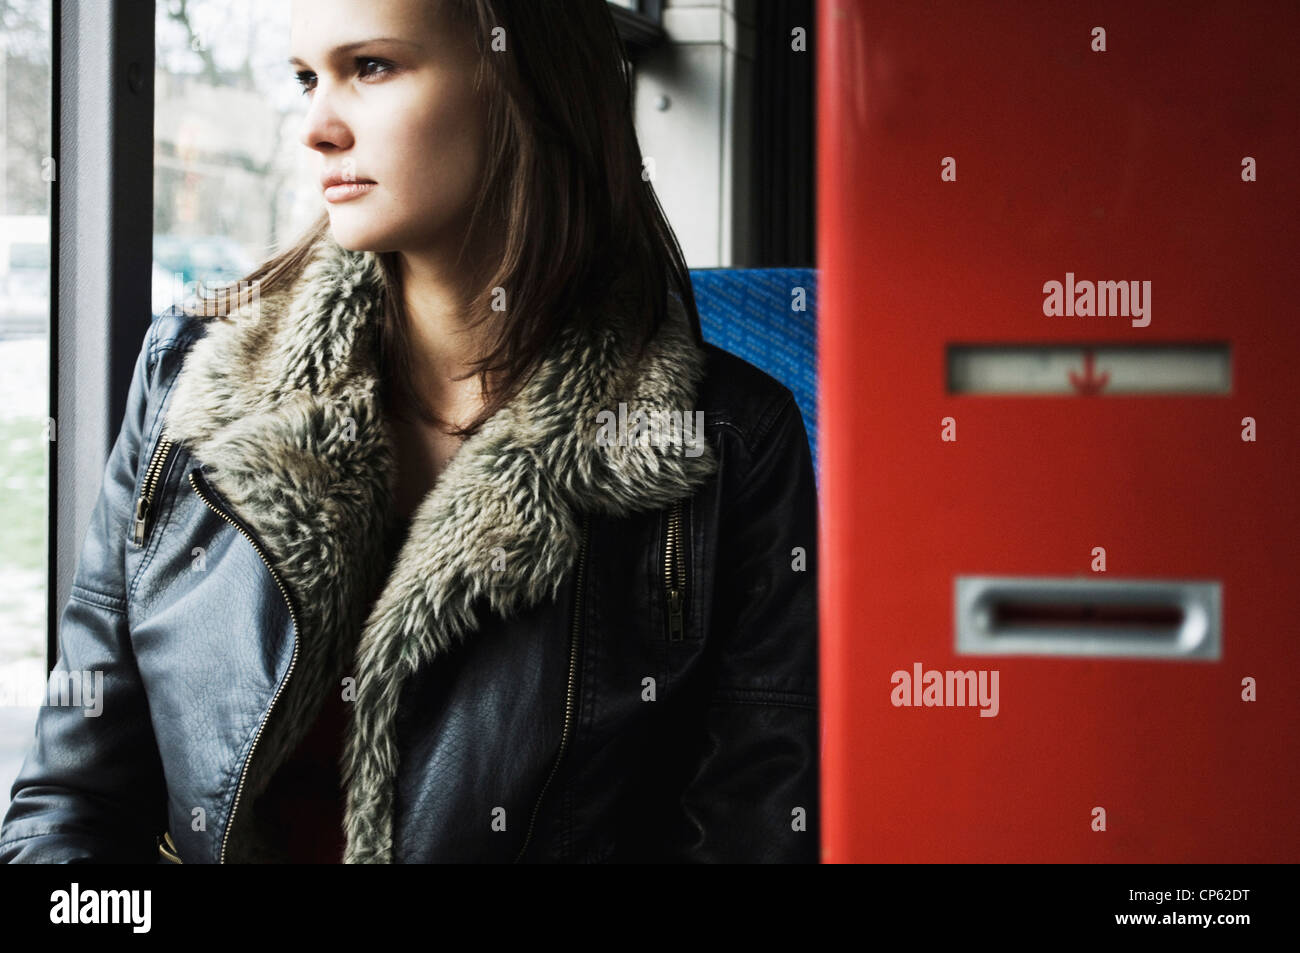 Germany, Duesseldorf, Young woman in public bus - Stock Image